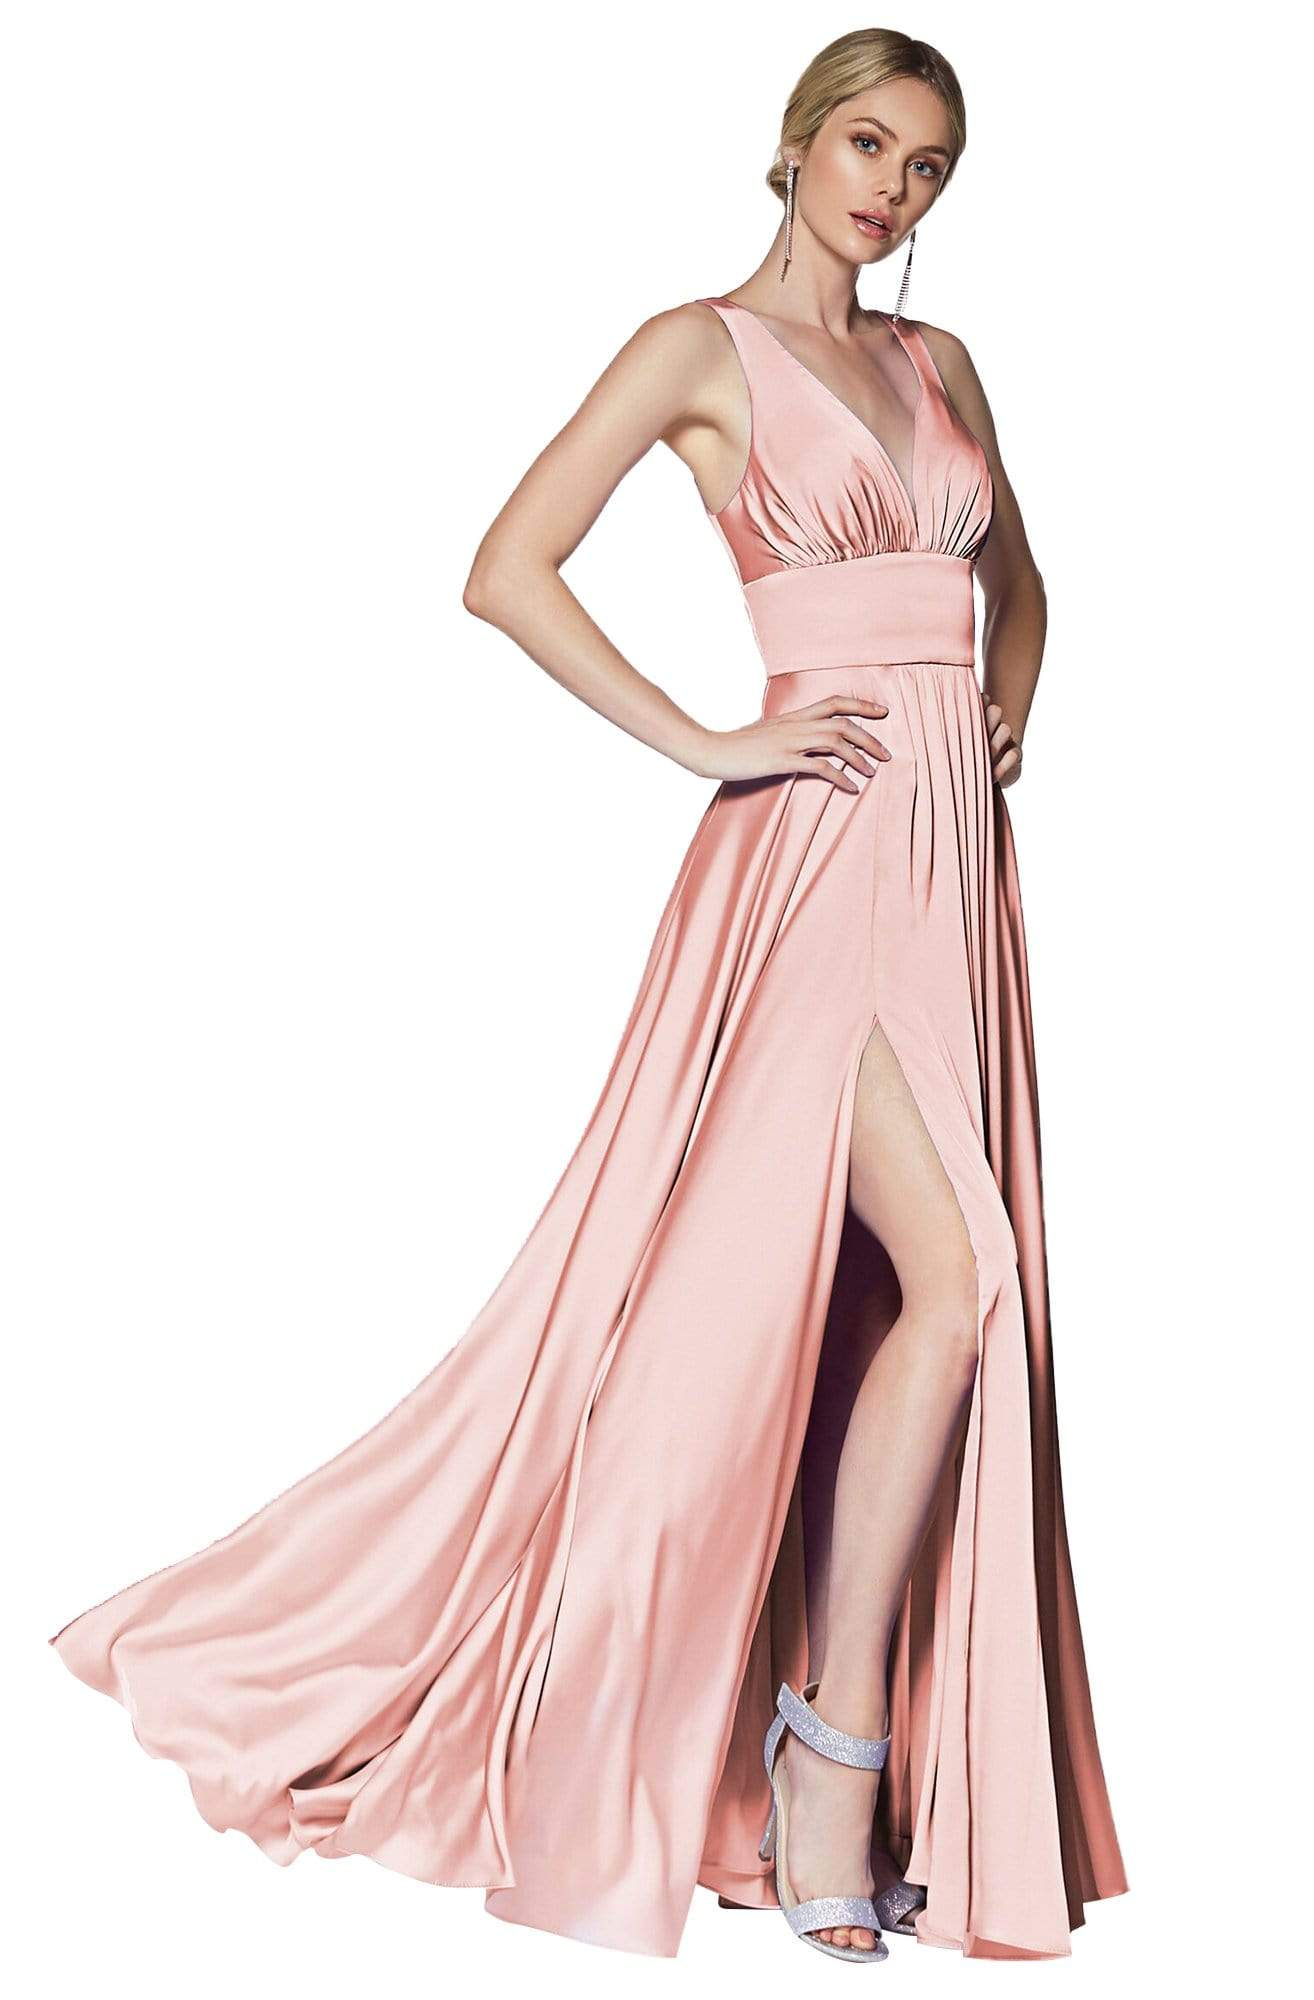 Cinderella Divine - 7469 Sleeveless V Neck Flowing Satin Gown in Pink